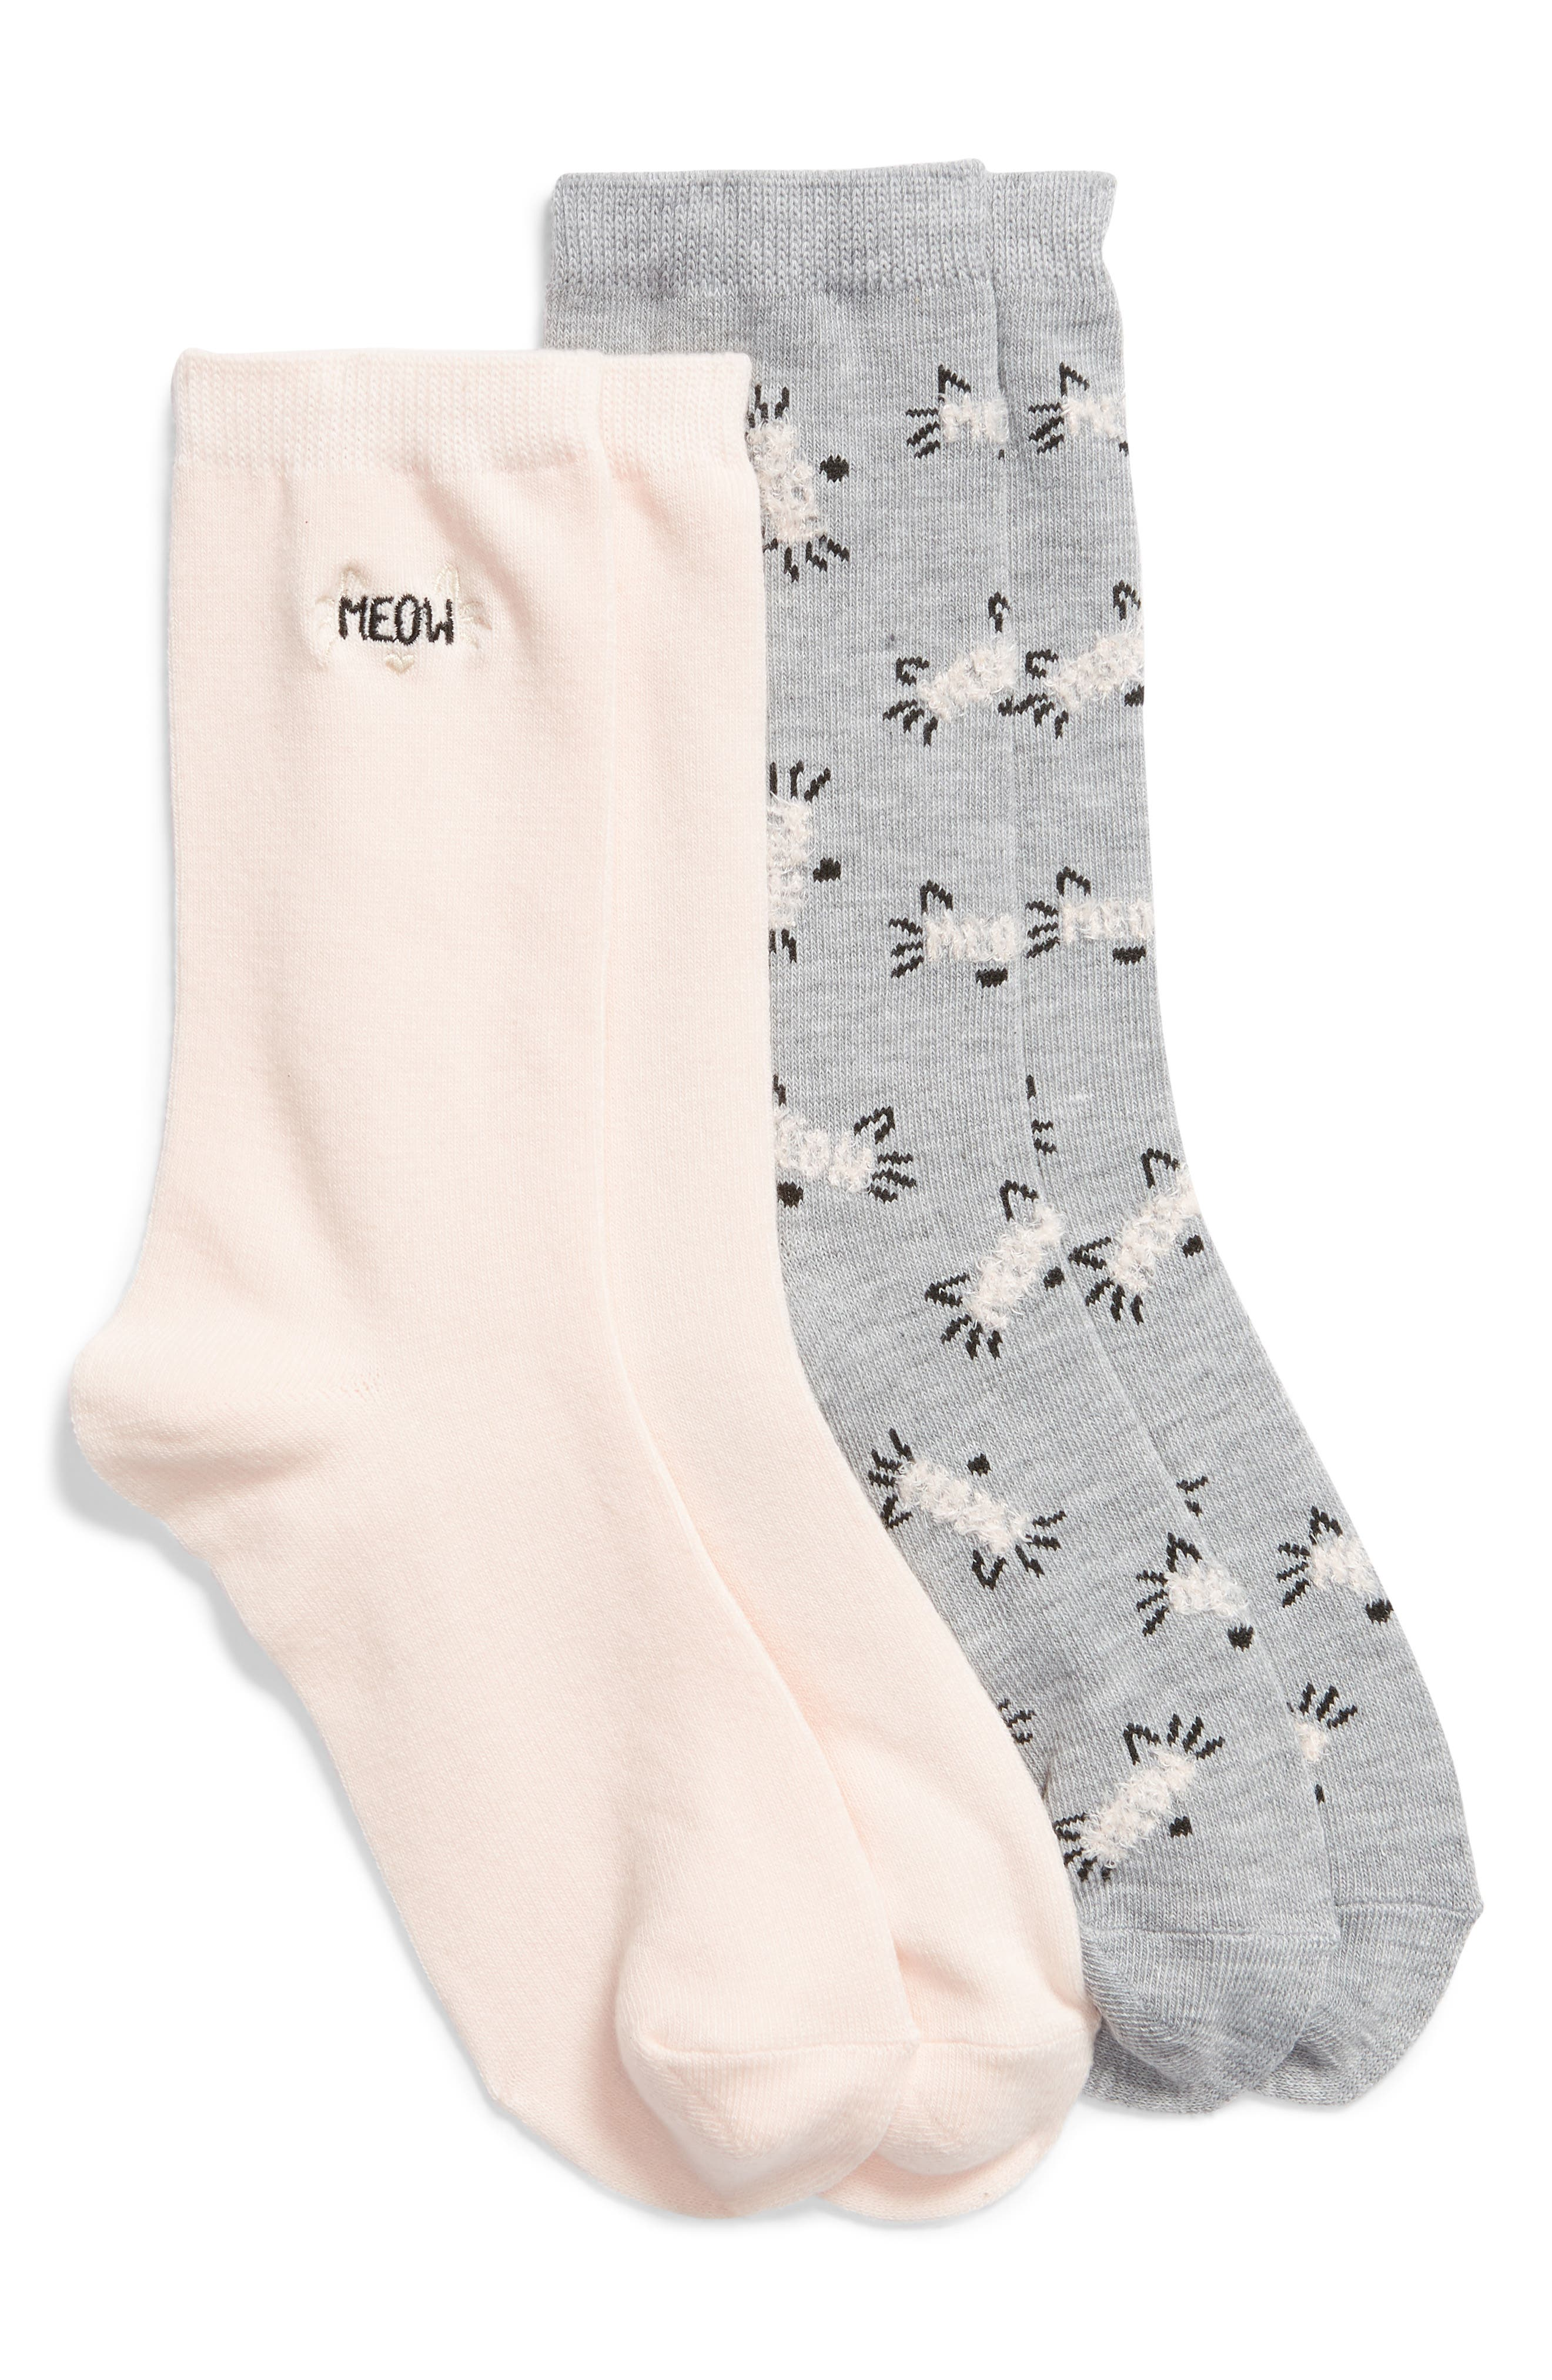 2-Pack Pattern Crew Socks,                             Main thumbnail 1, color,                             PINK MEOW